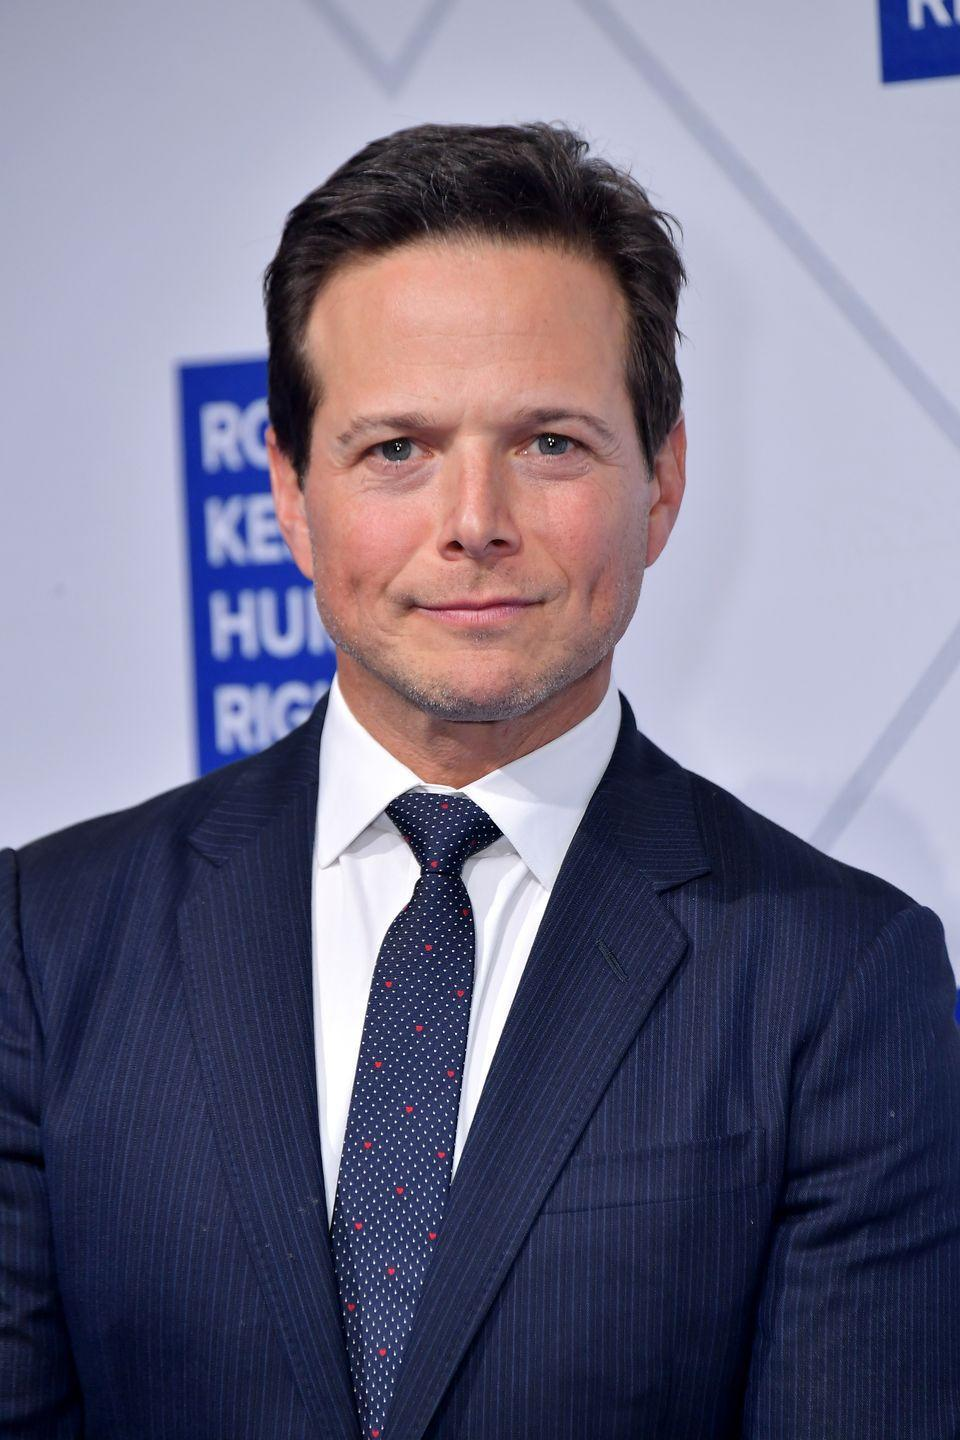 <p>Like many other '90s leading men, Scott is still working in television and has been on shows like <em>Everwood</em> and <em>The Night Shift</em>. </p>